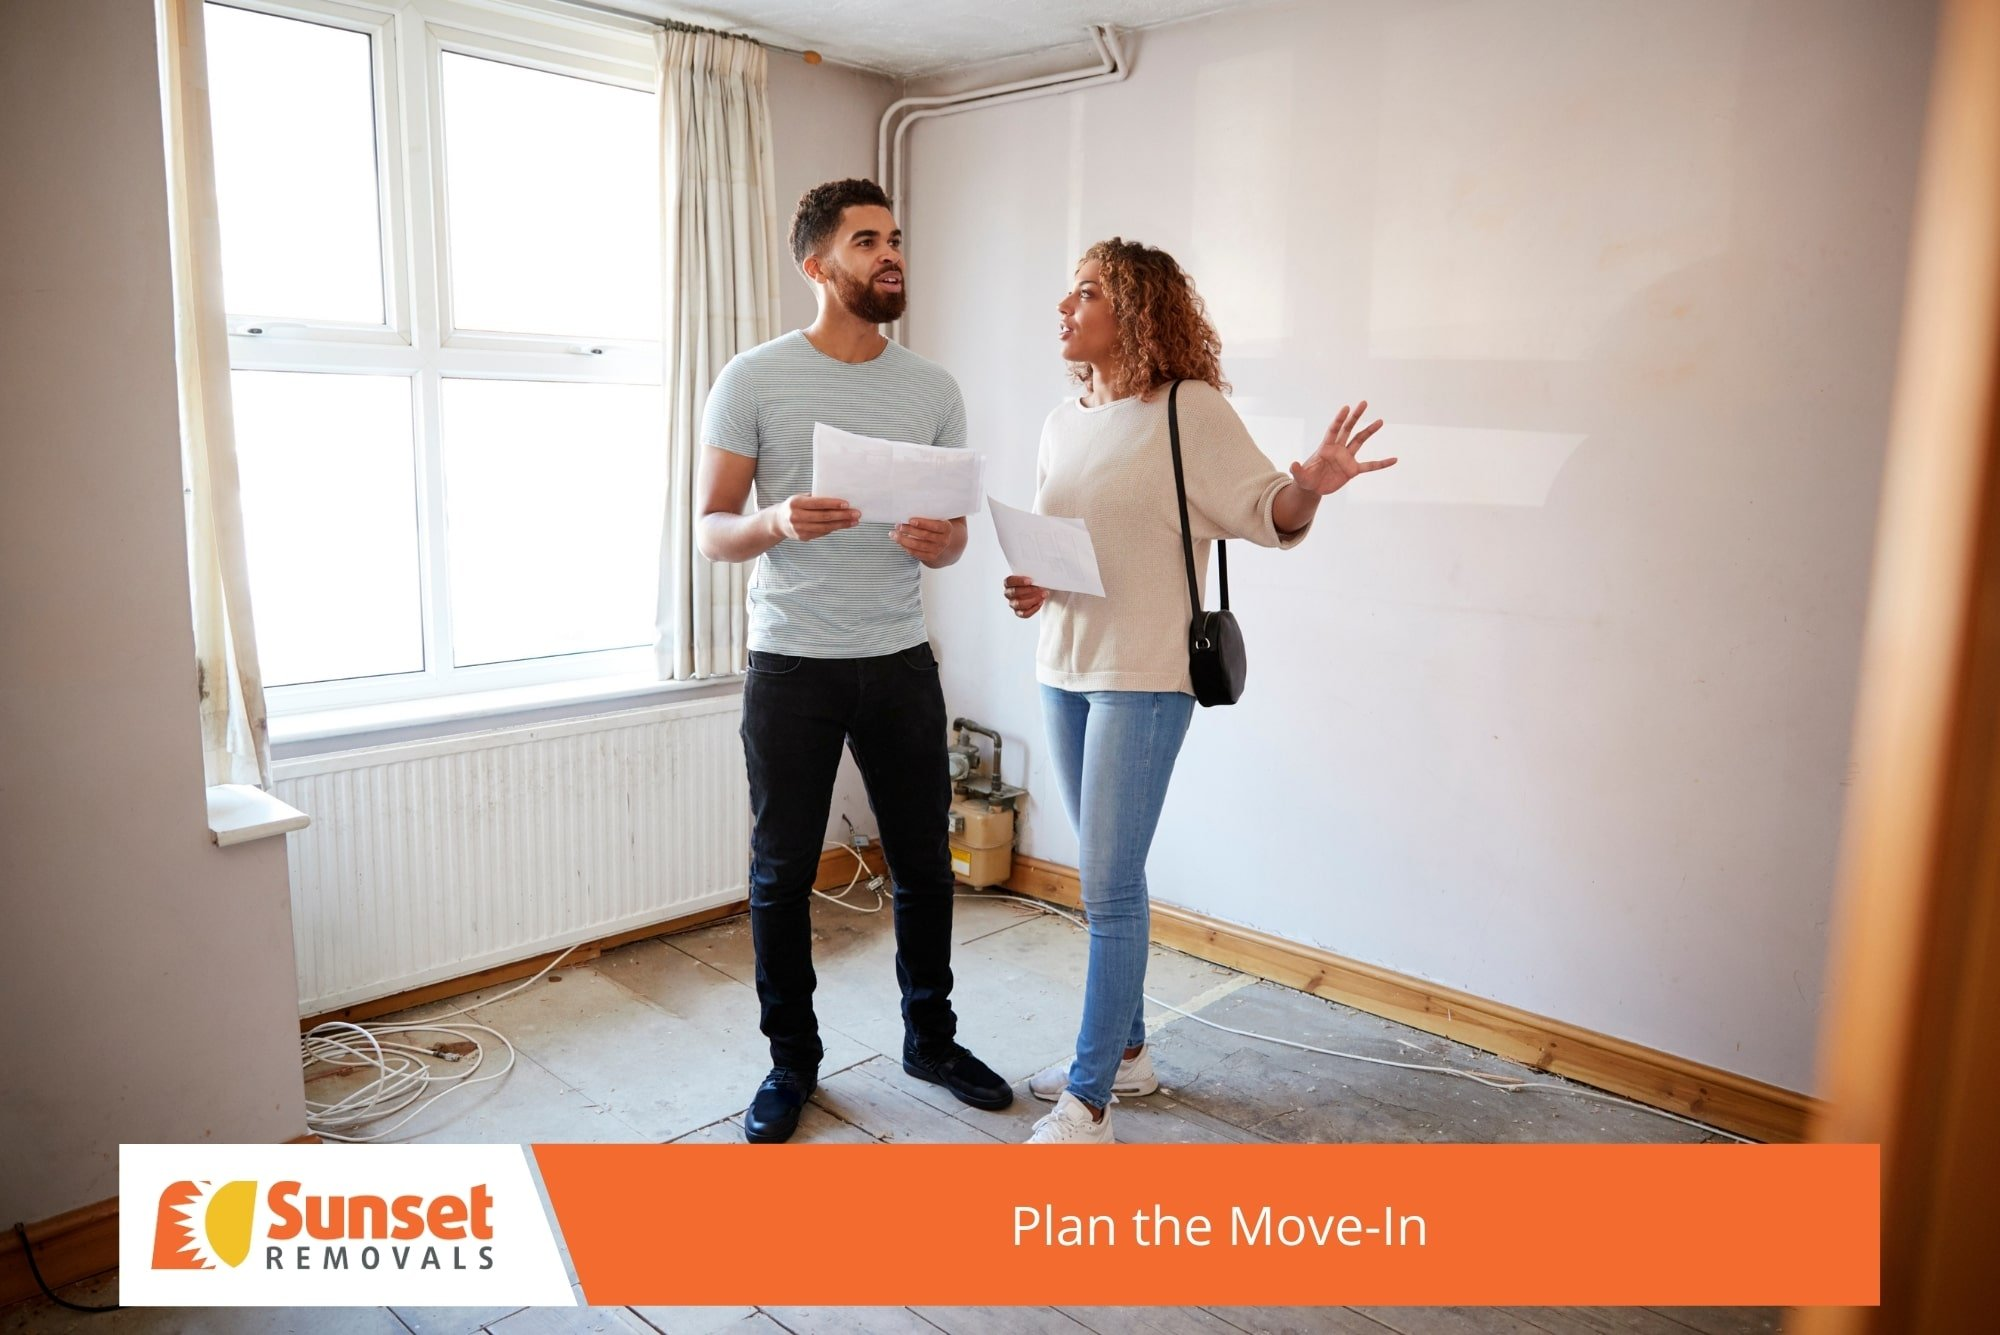 Plan the Move-In